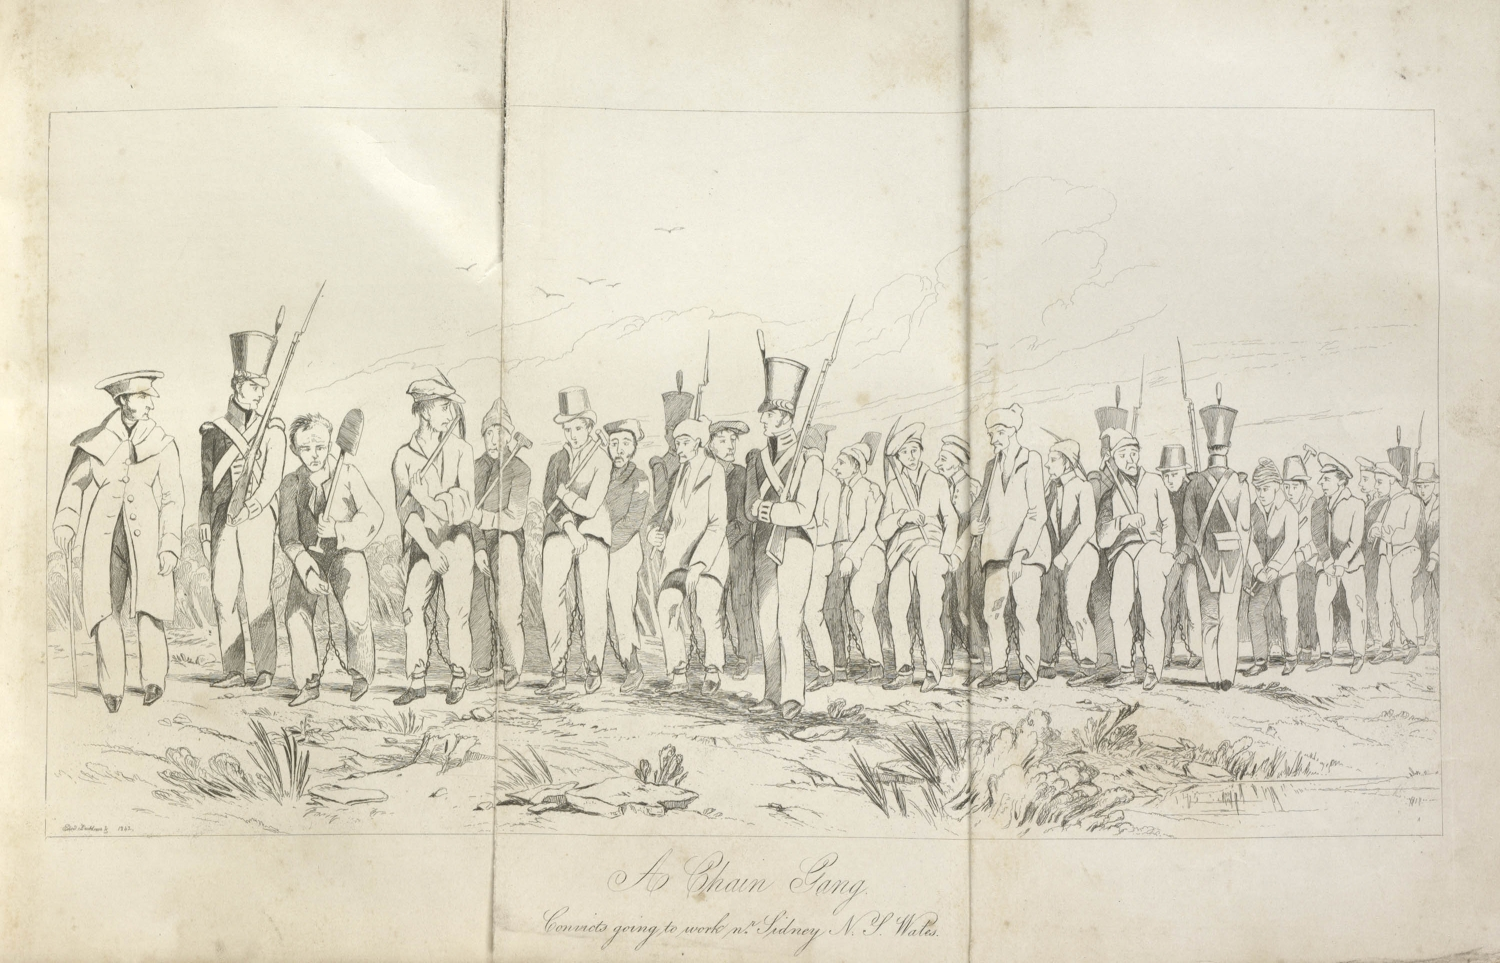 Etching showing a large group of convicts marching under an escort of soldiers